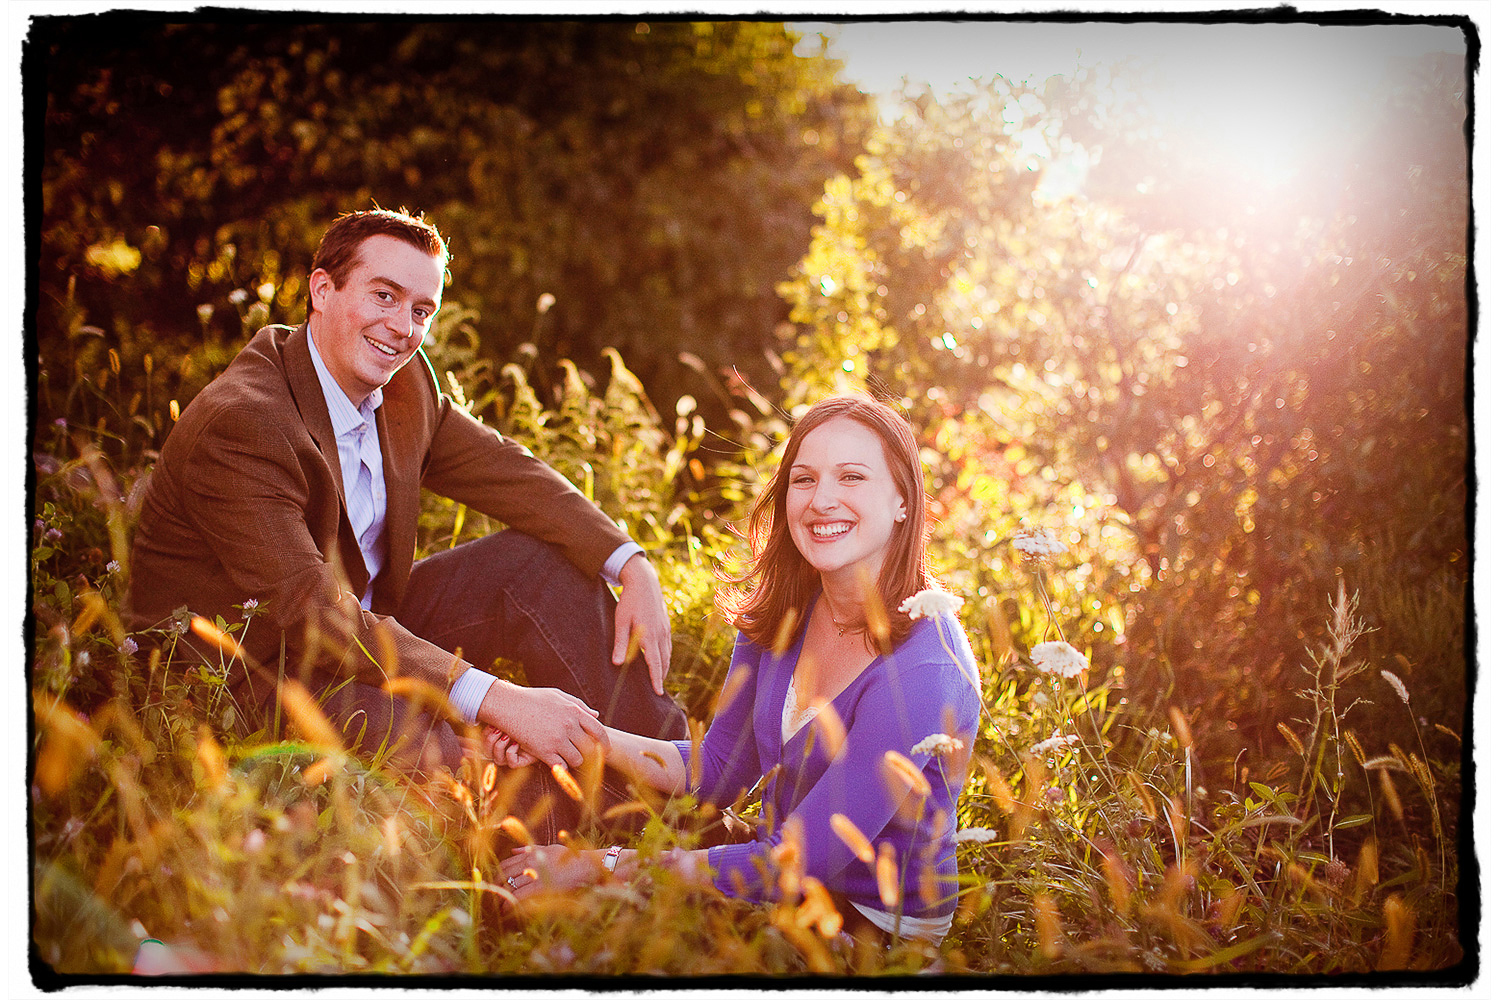 Engagement Portraits: Amy & Mike in the grass at Brooklyn Bridge Park.